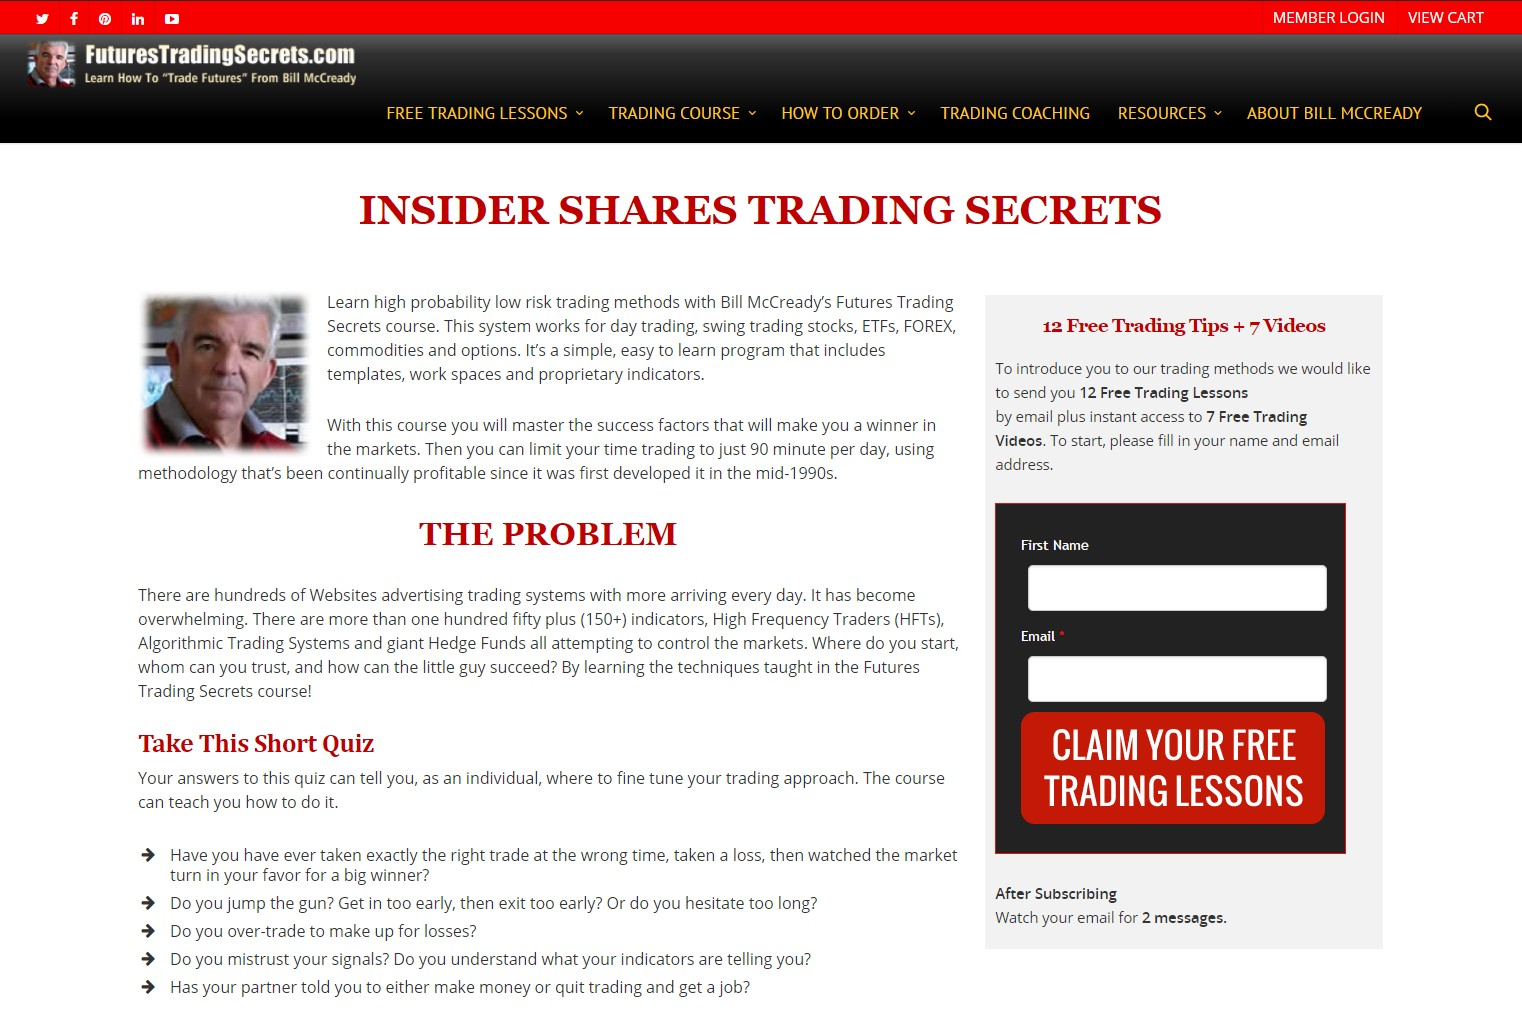 Futures Trading Secrets – Paid Membership Site, Protected Content and e-Commerce